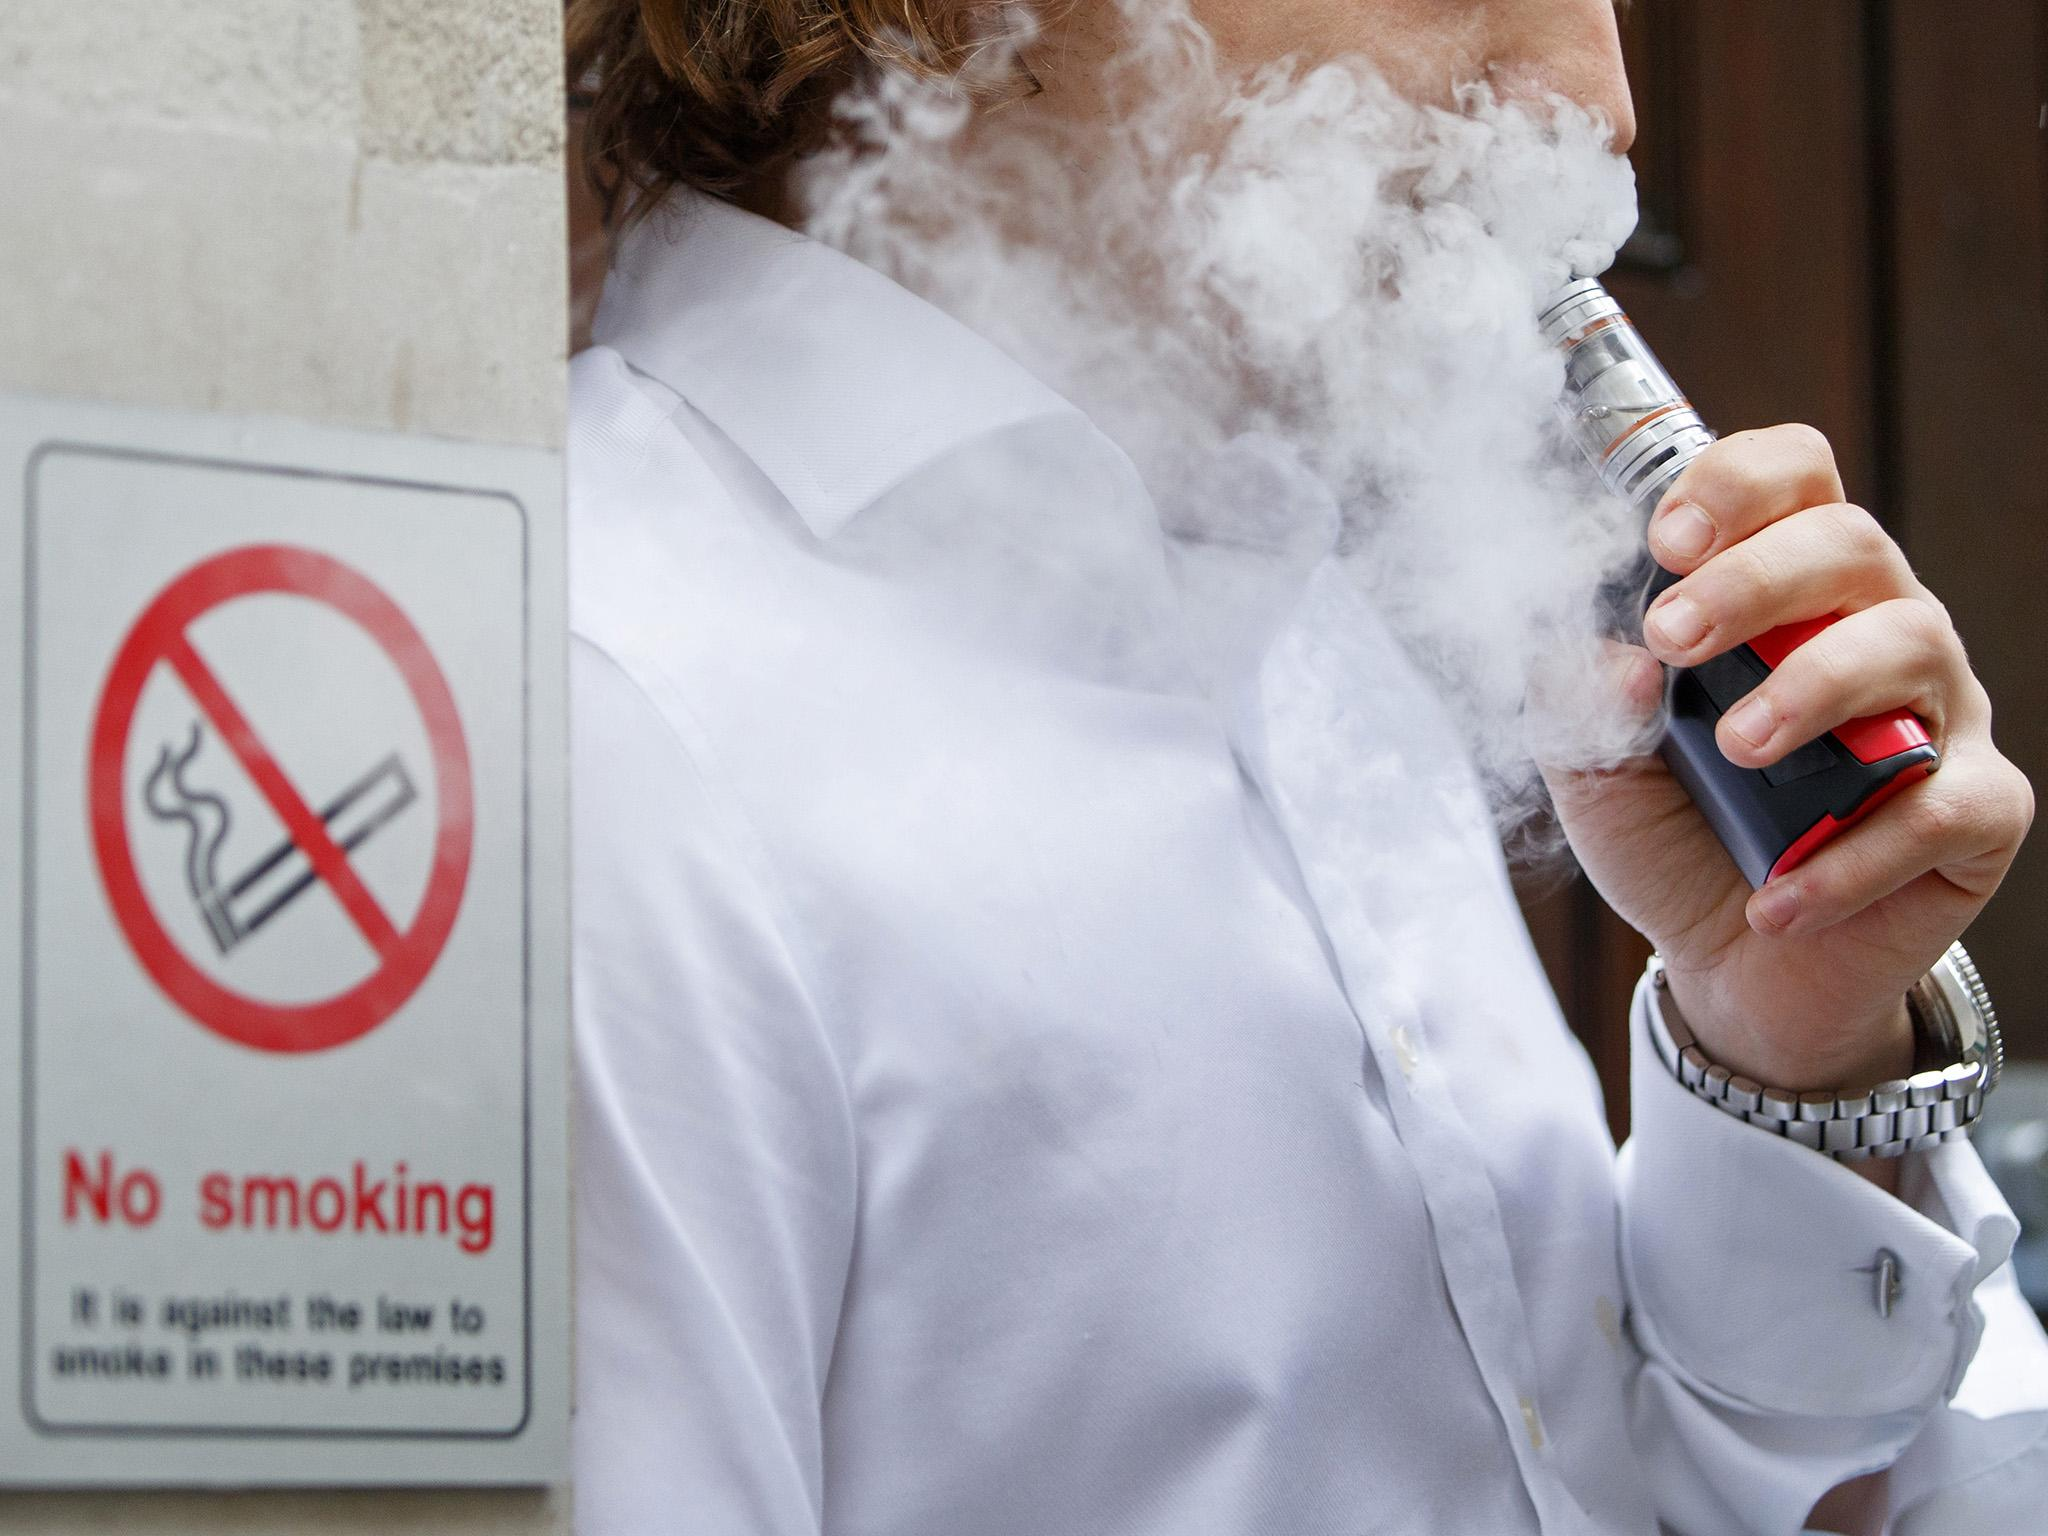 Vaping Latest News Breaking Stories And Comment The Independent